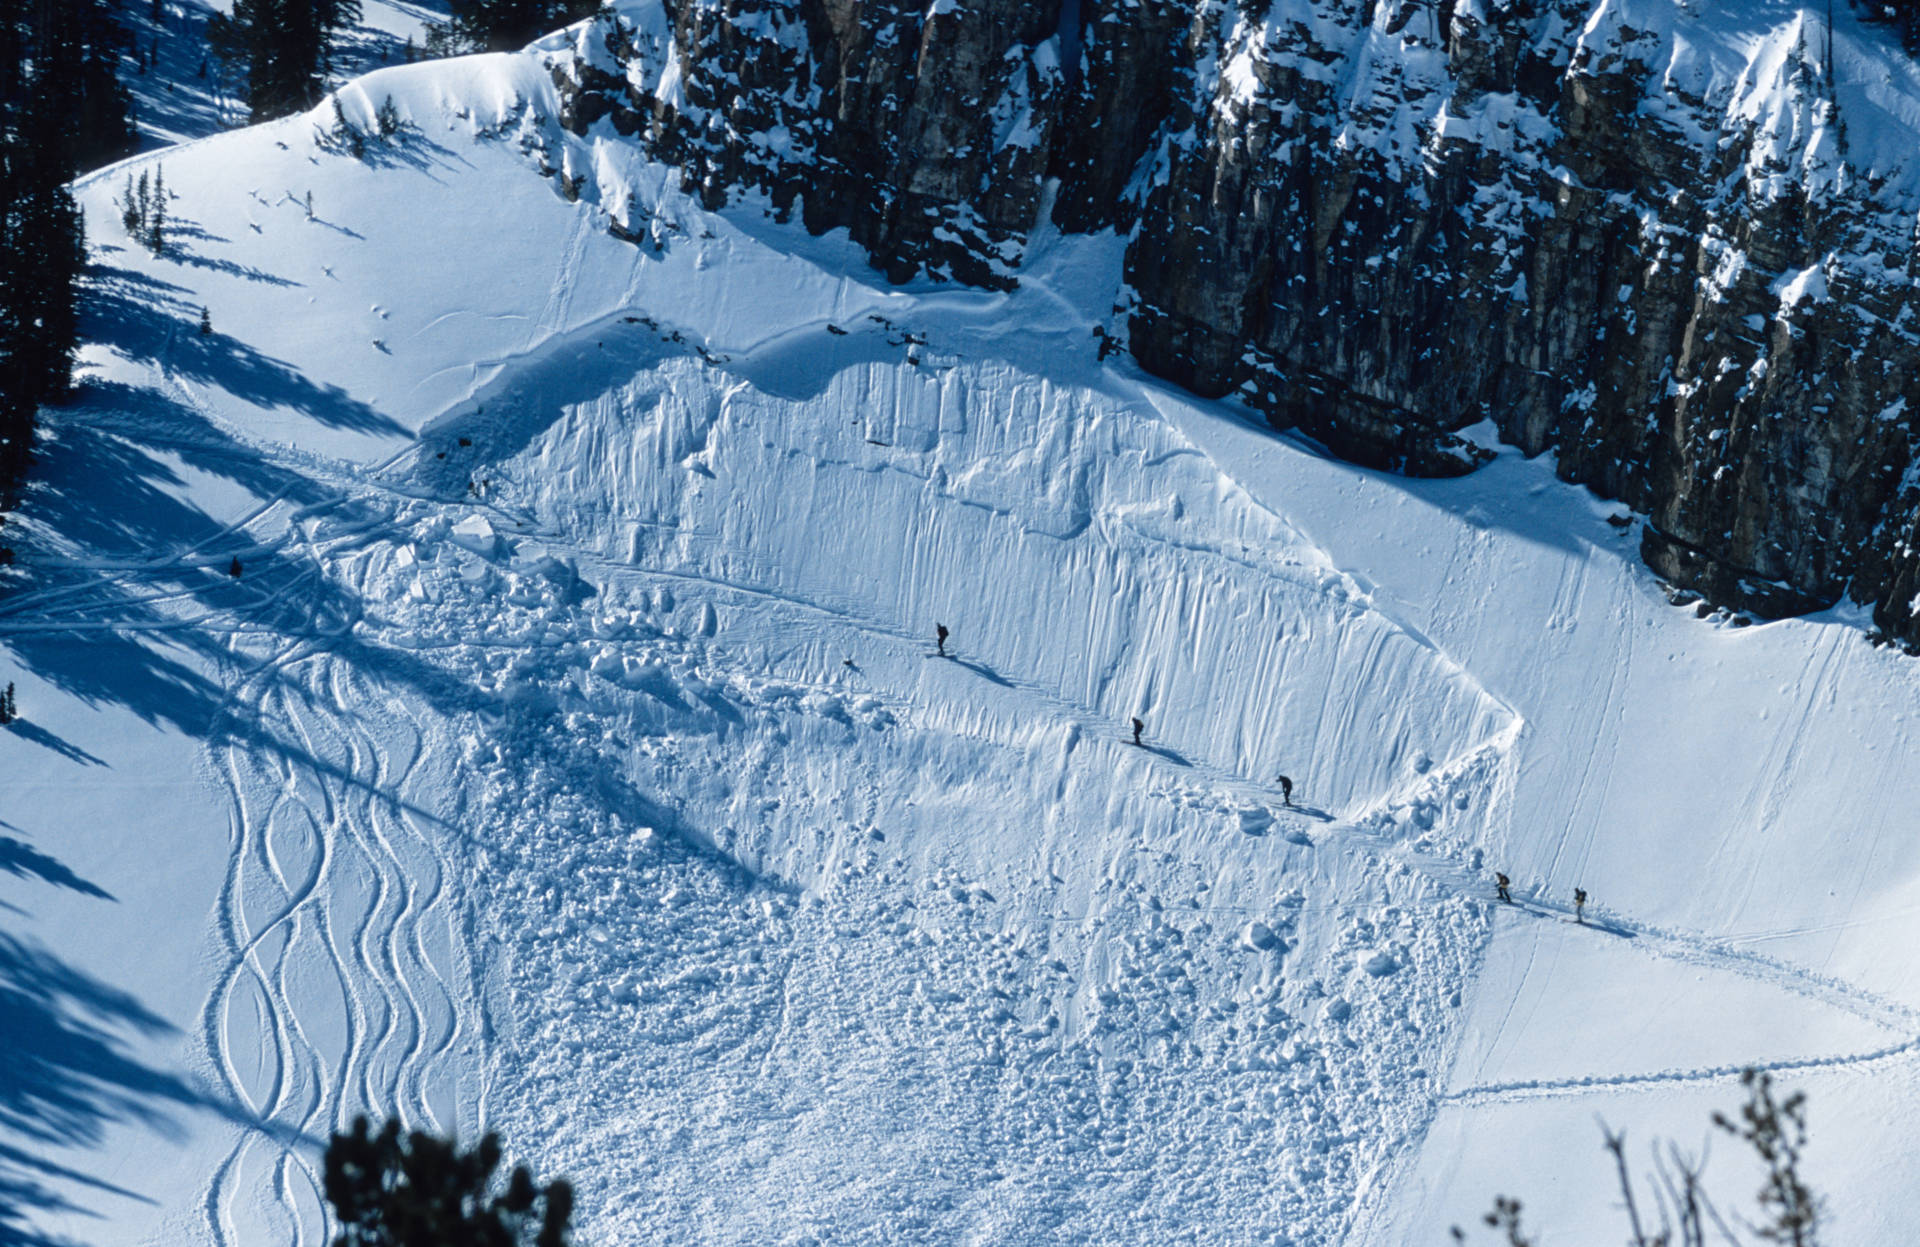 Five backcountry skiers cross a avalanche path while hiking outside of Jackson Hole Resort, Wyoming. KevinCass/iStockphoto